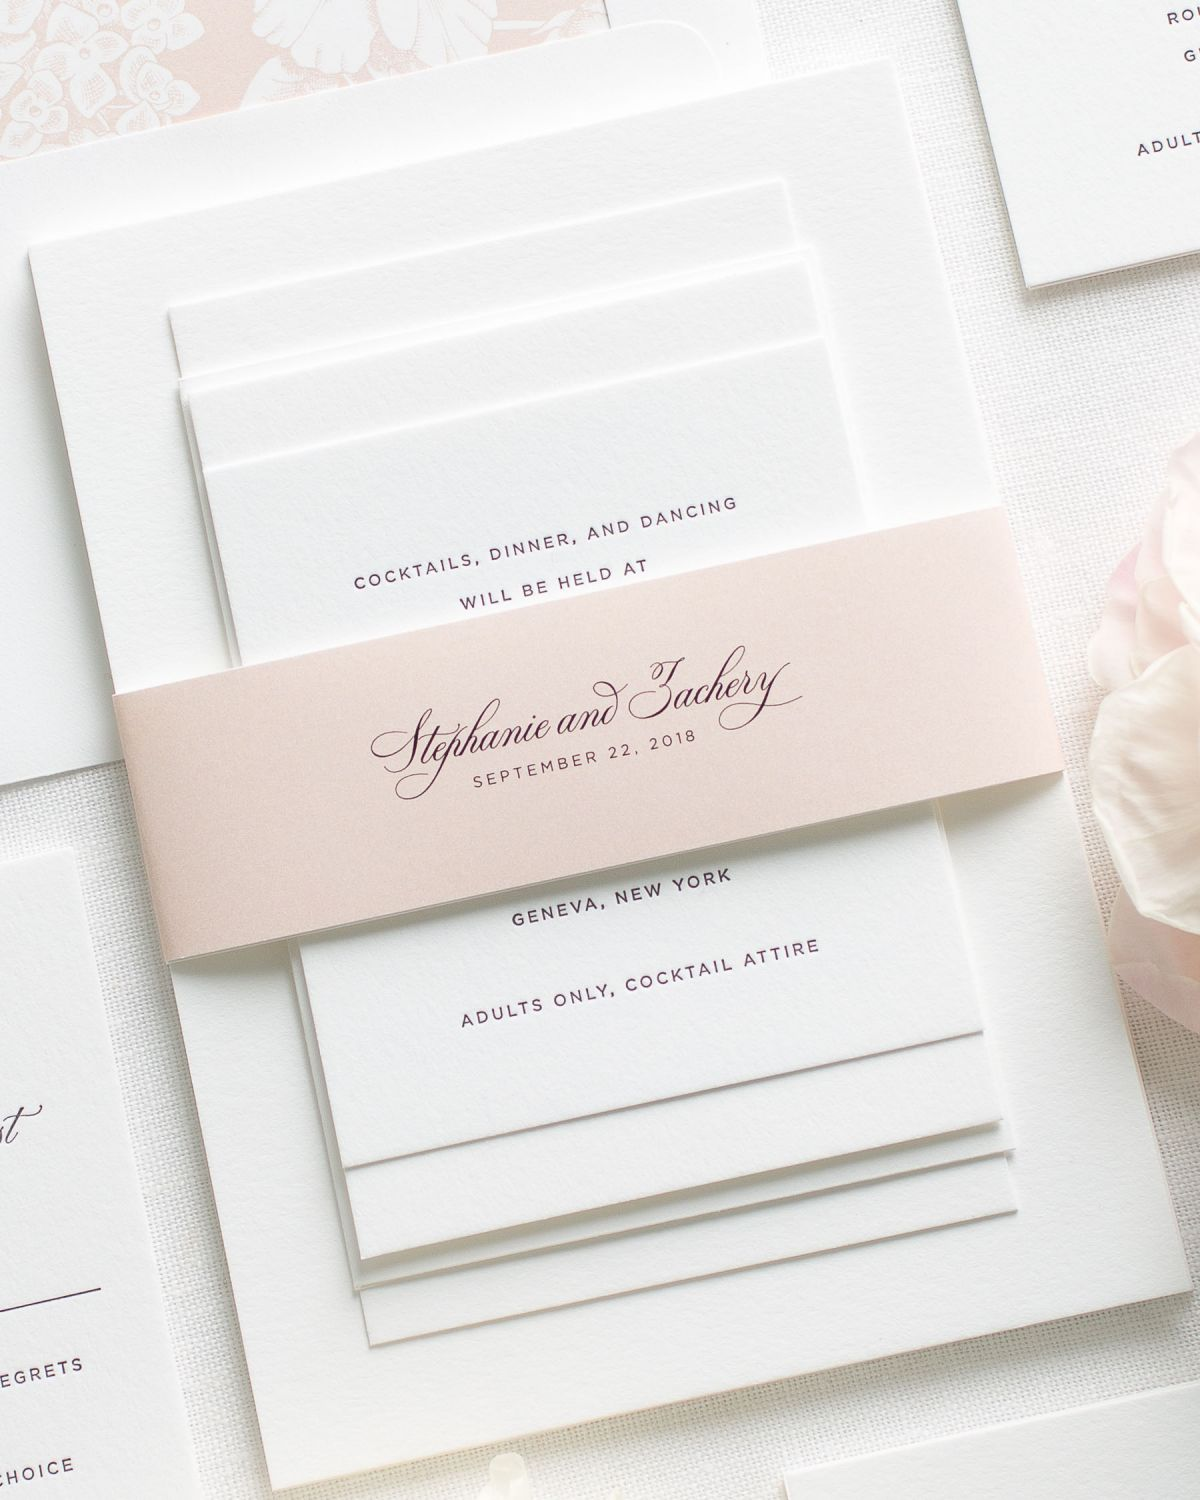 Blush Wedding Invitations With Belly Bands And Letterpress Printing